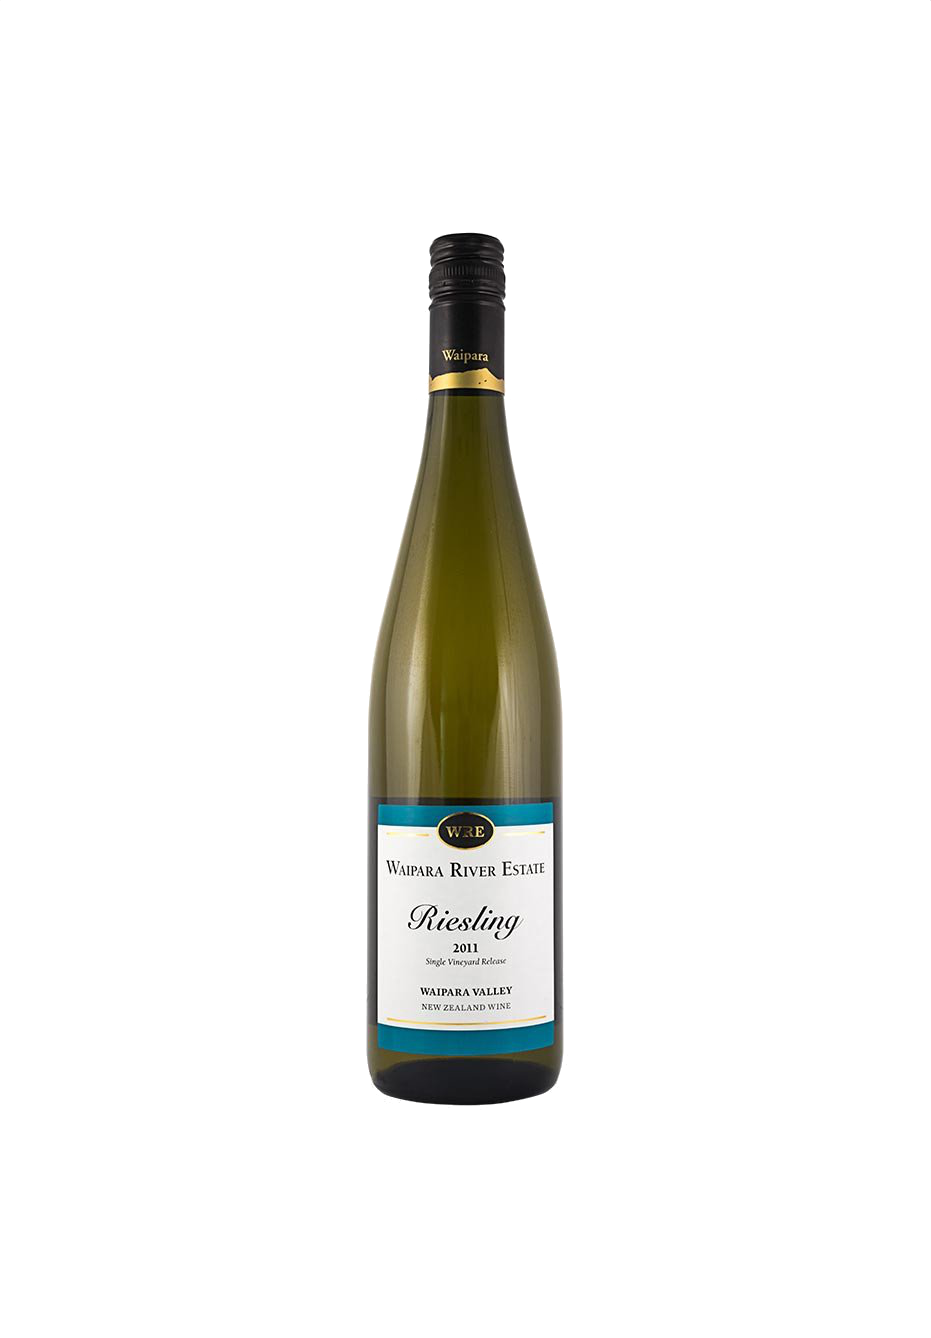 Waipara River Estate 'Single Vineyard' Riesling 2010